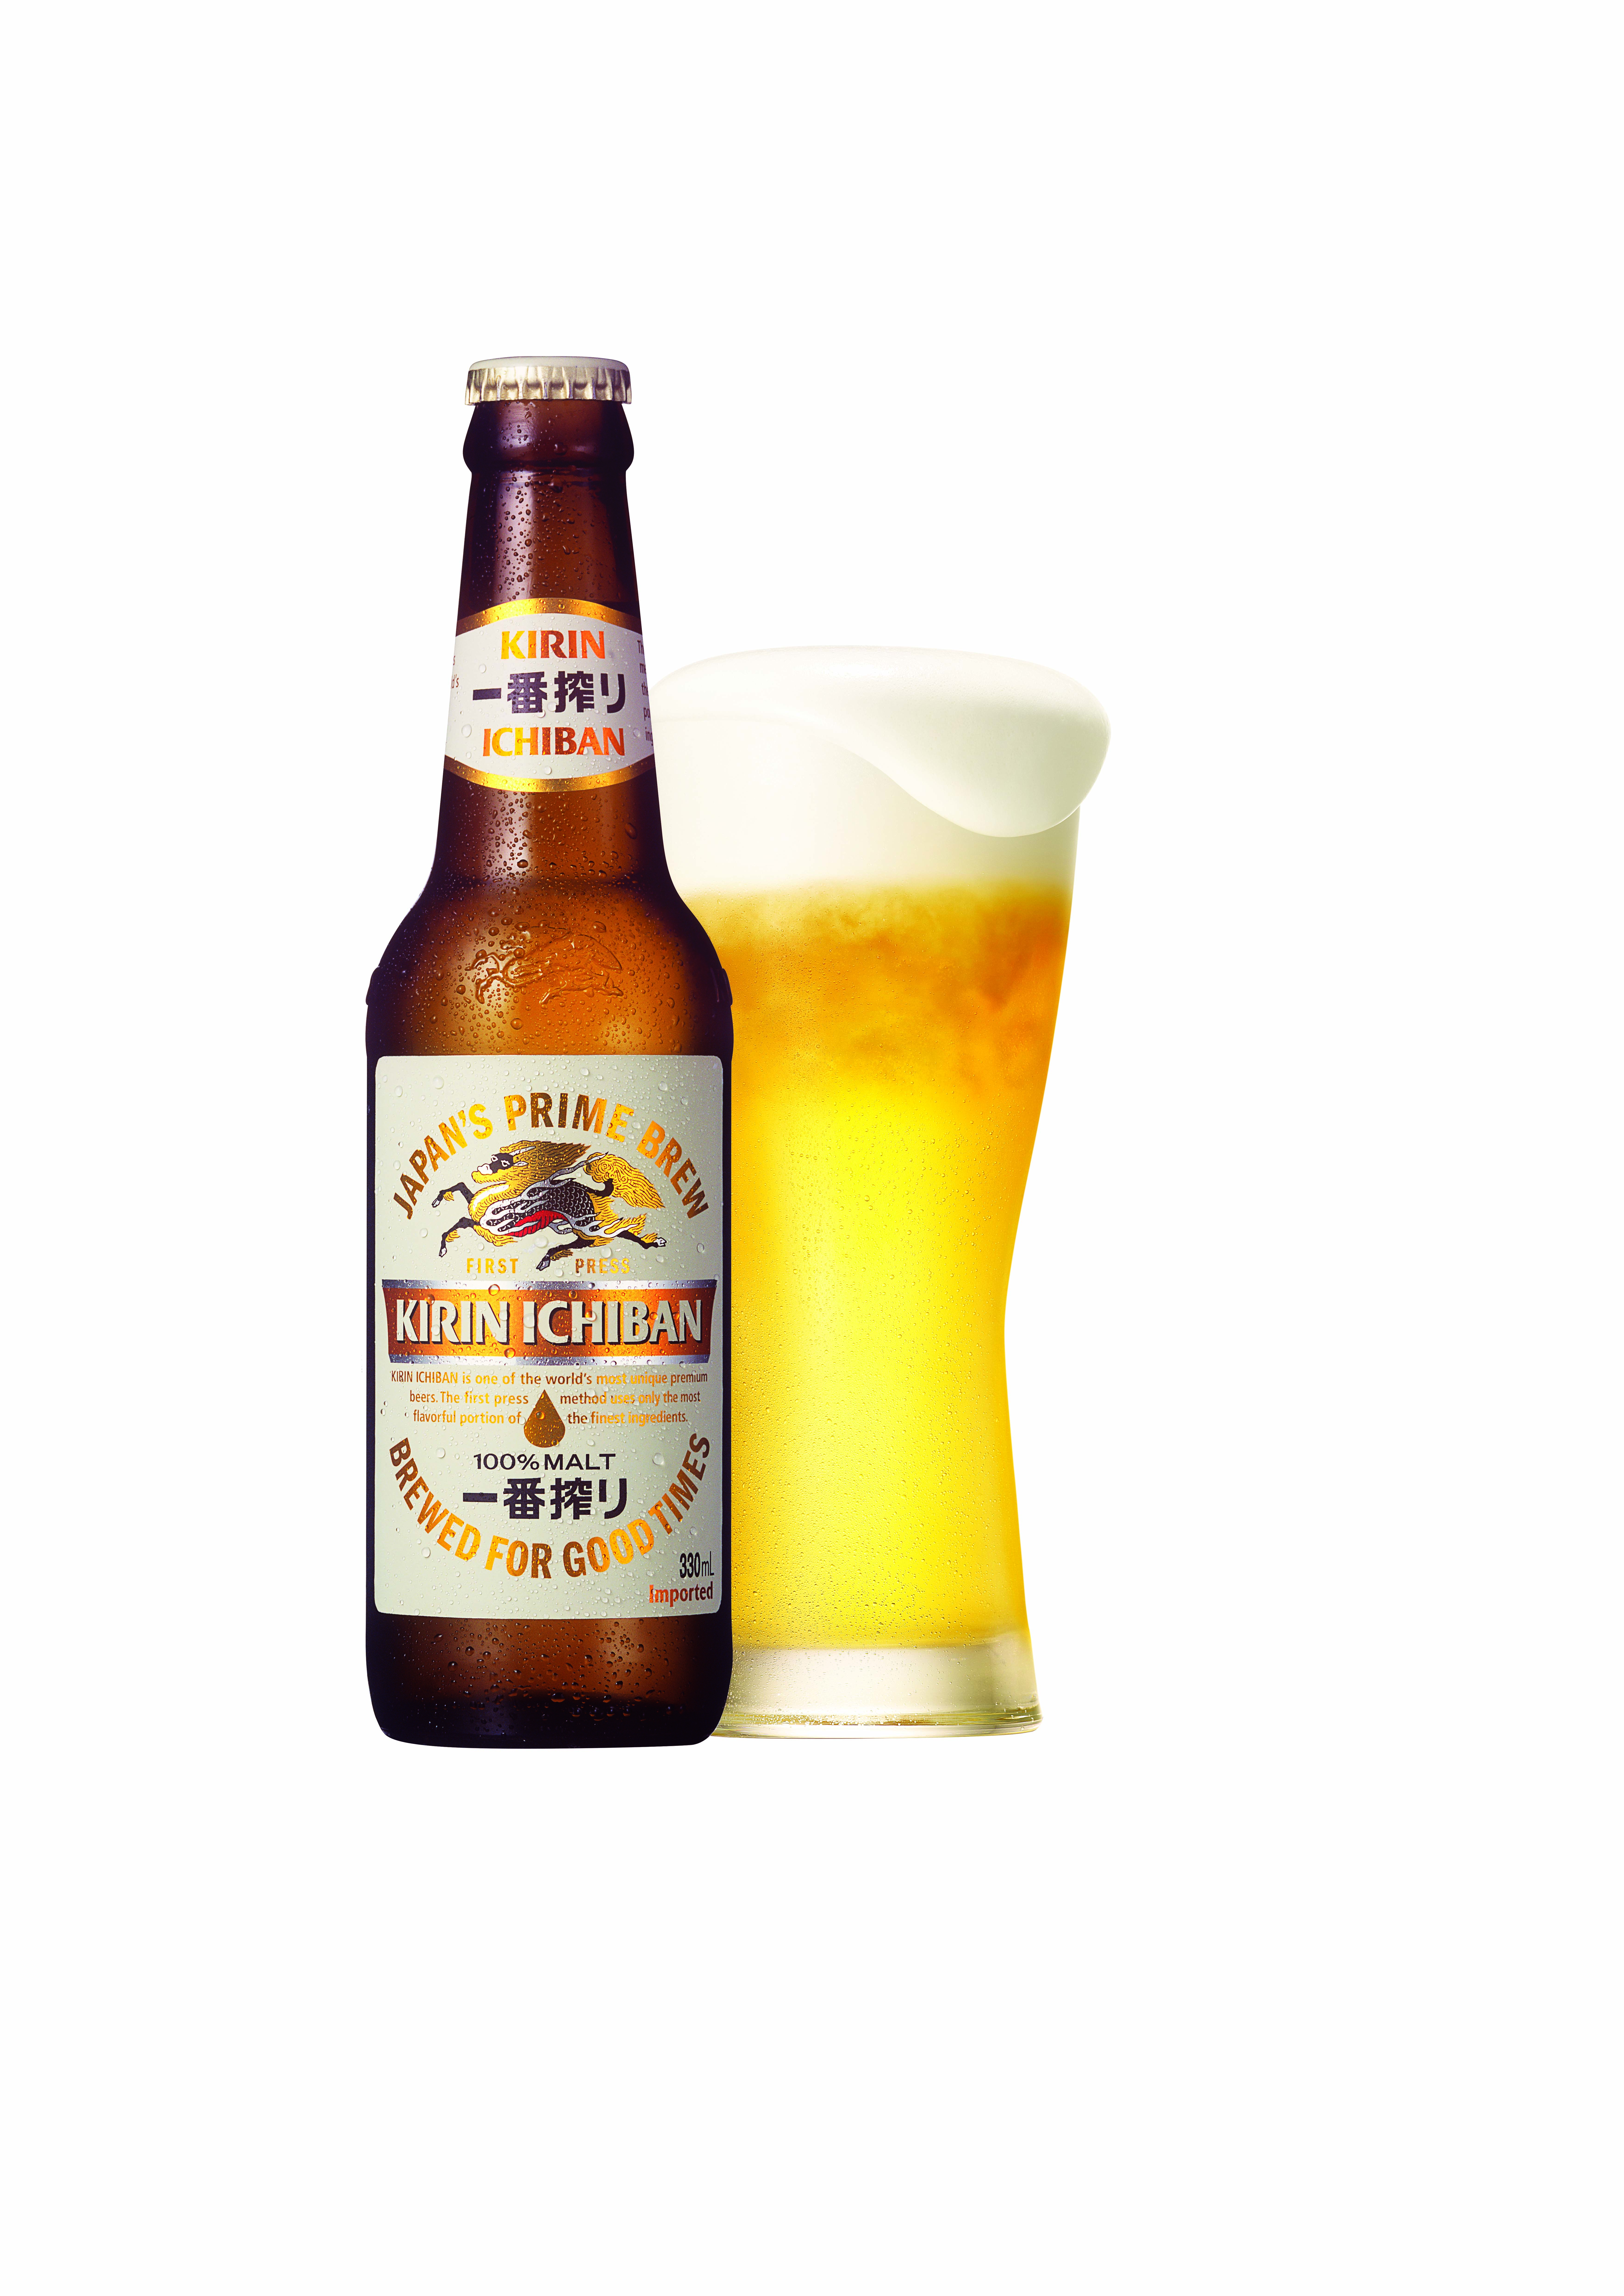 HI_KIRIN_small bottle 2